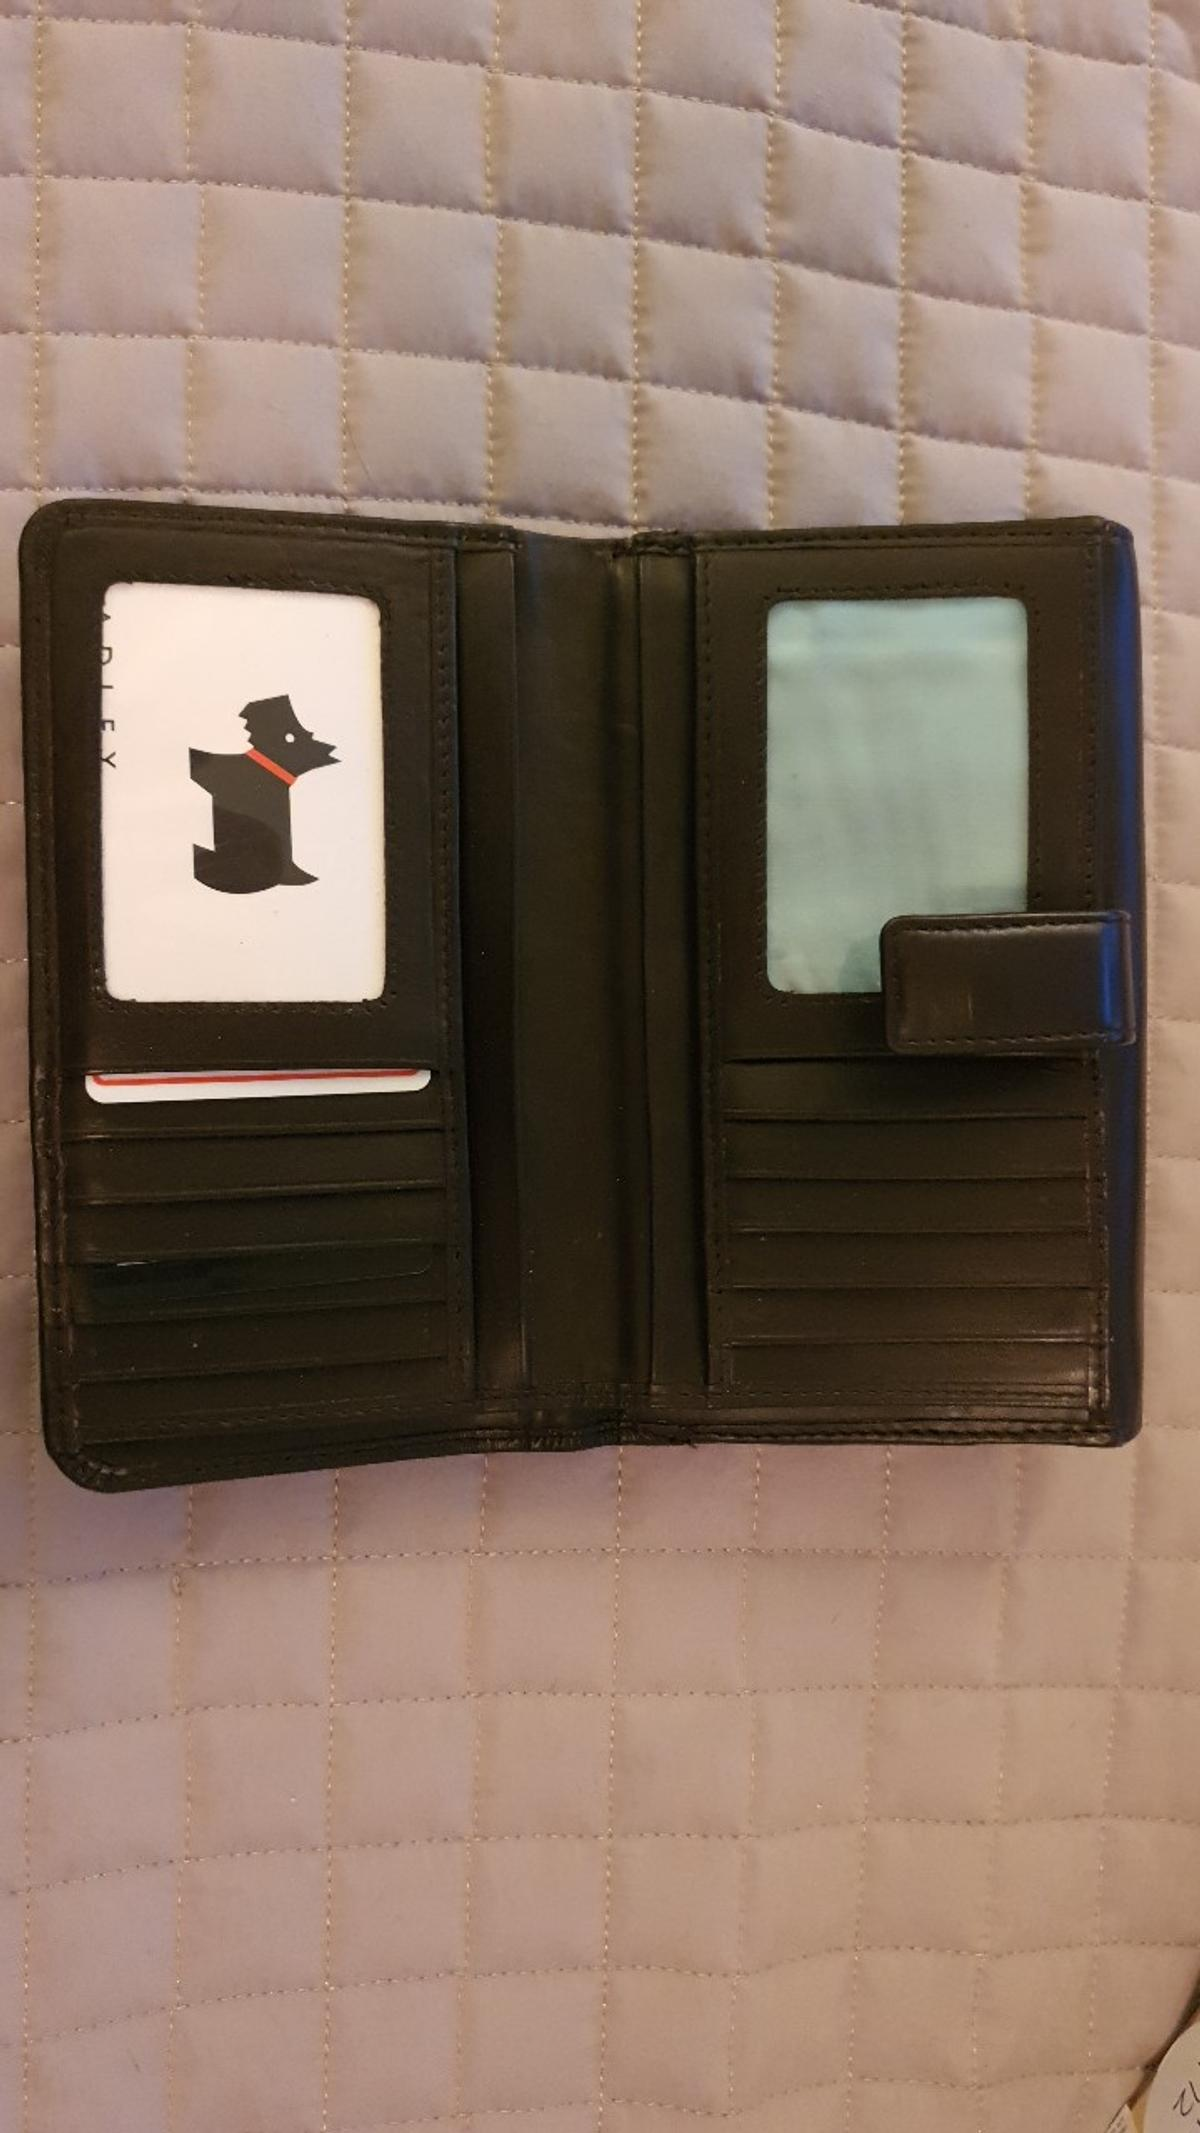 Genuine Radley Purse Black/Brown Style 81573 2 zip sections Card holder section Notes holder section Minimal scuff on rear as shown in pictures otherwise in excellent condition.